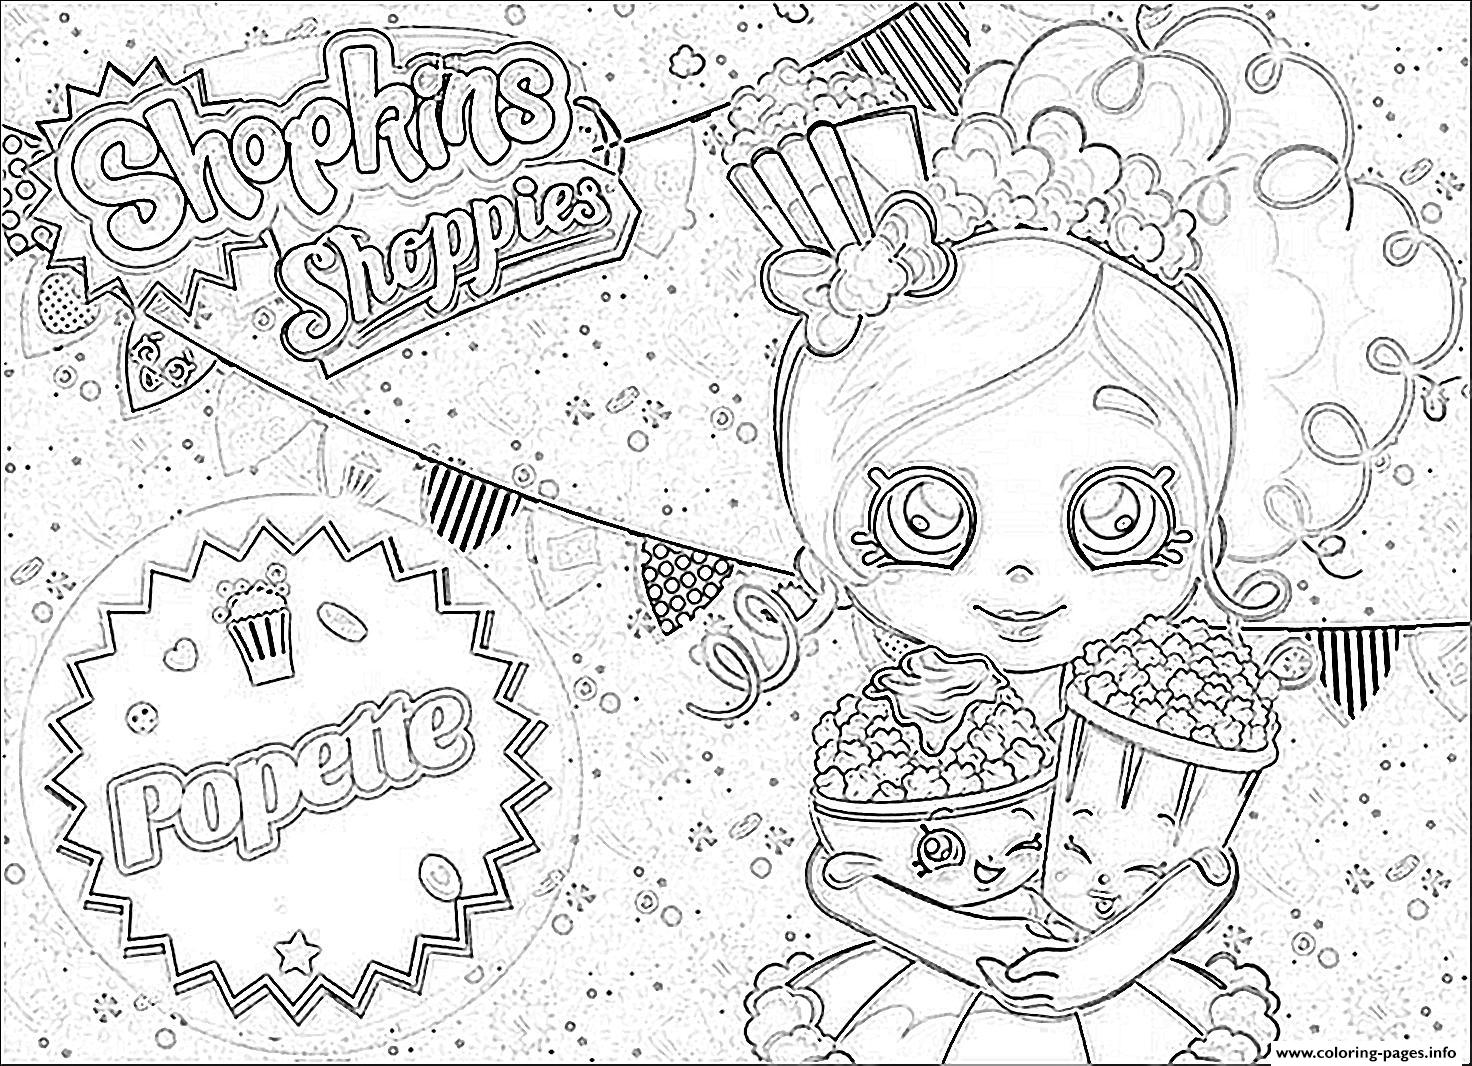 Shopkins coloring pages season 3 - Shopkins Popette Official Colouring Print Shopkins Popette Official Coloring Pages Shopkins Season